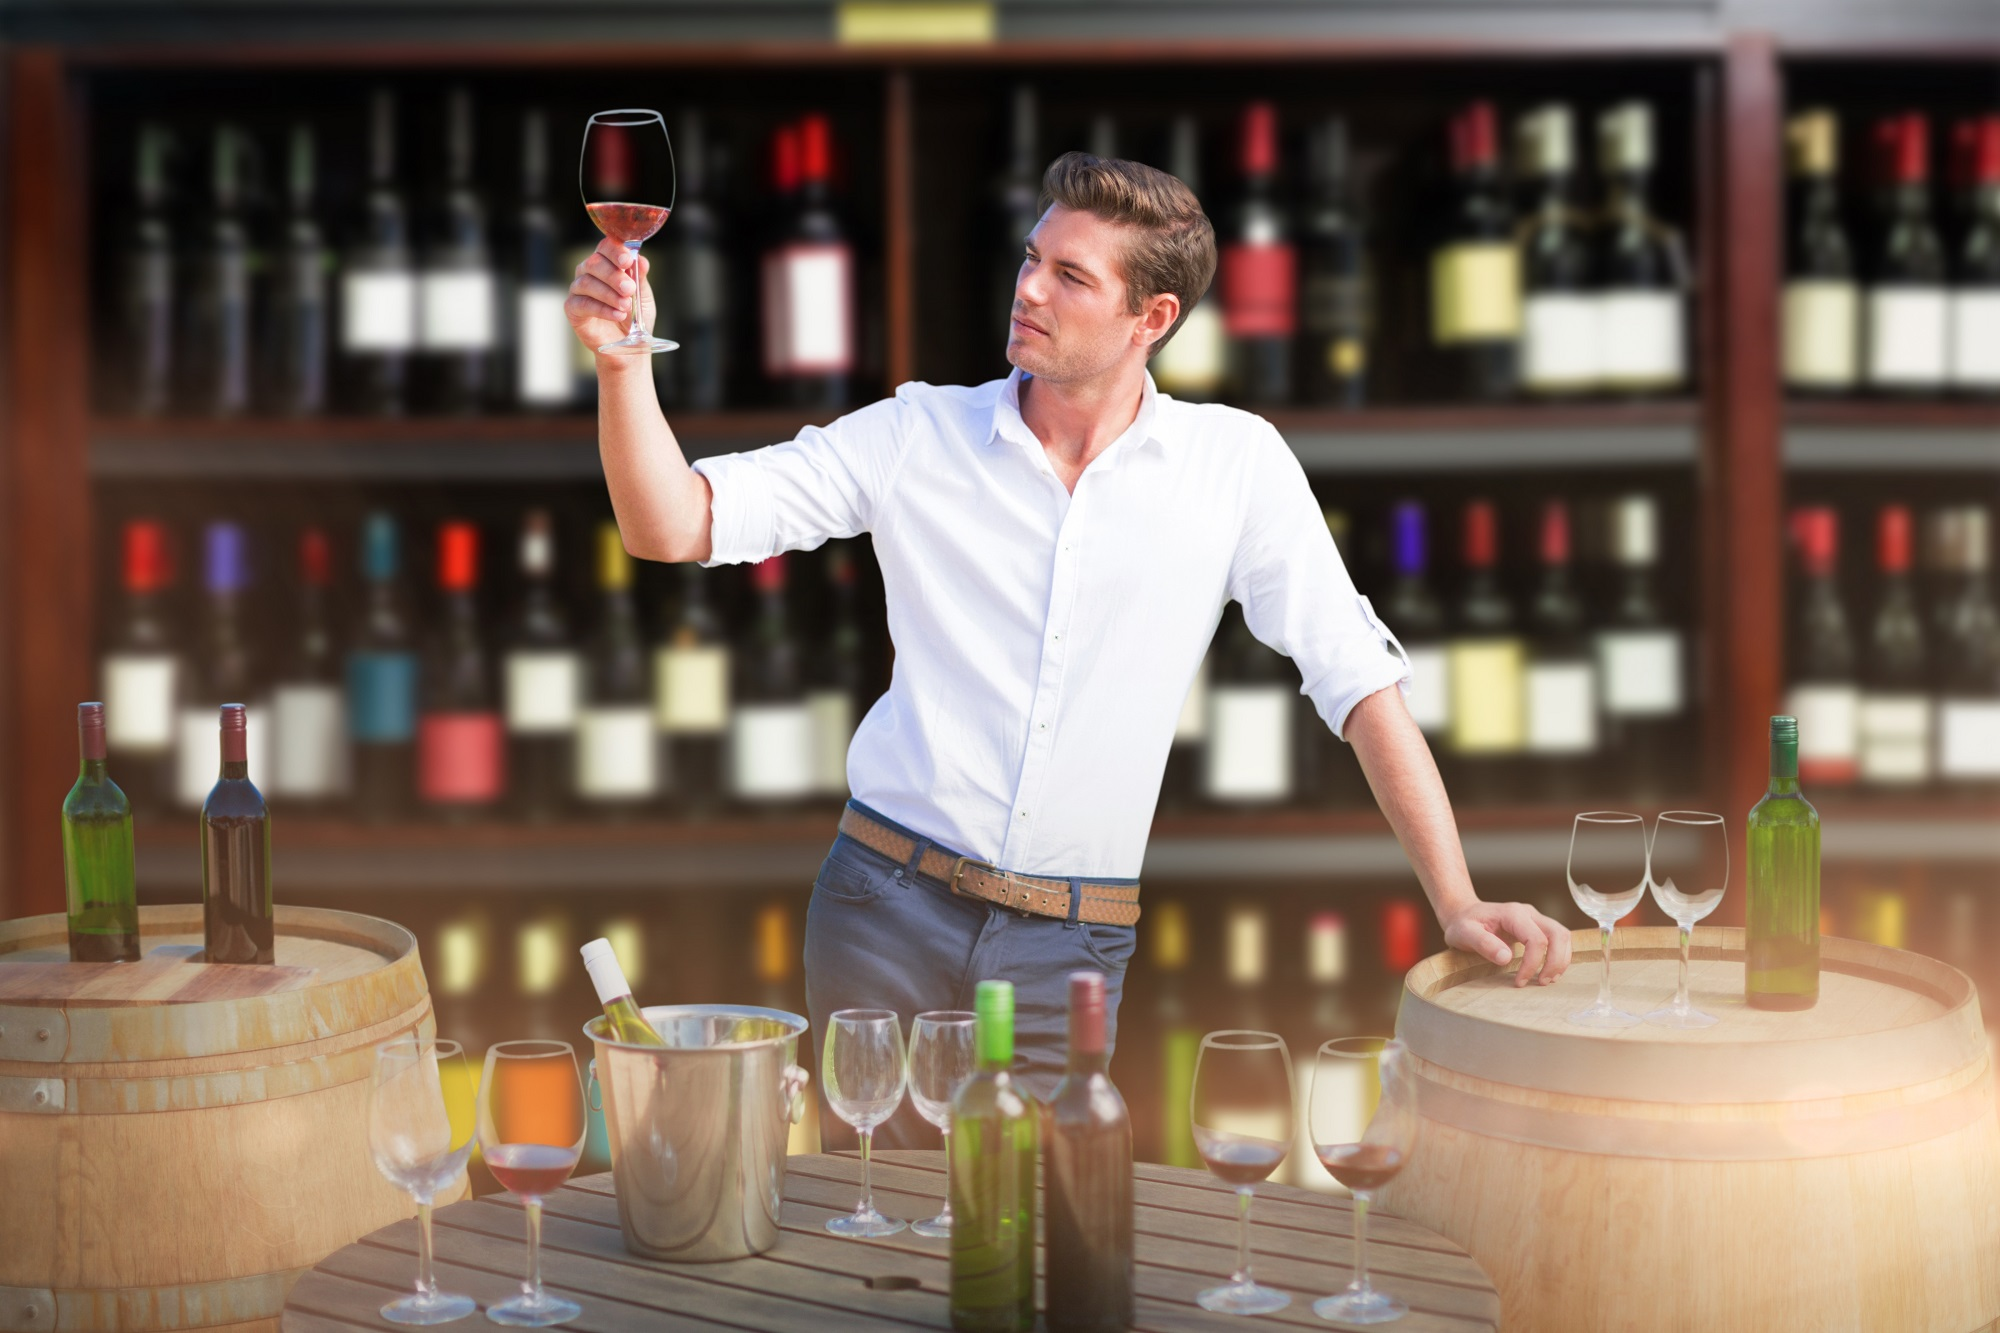 An Introduction to Alcohol Licensing